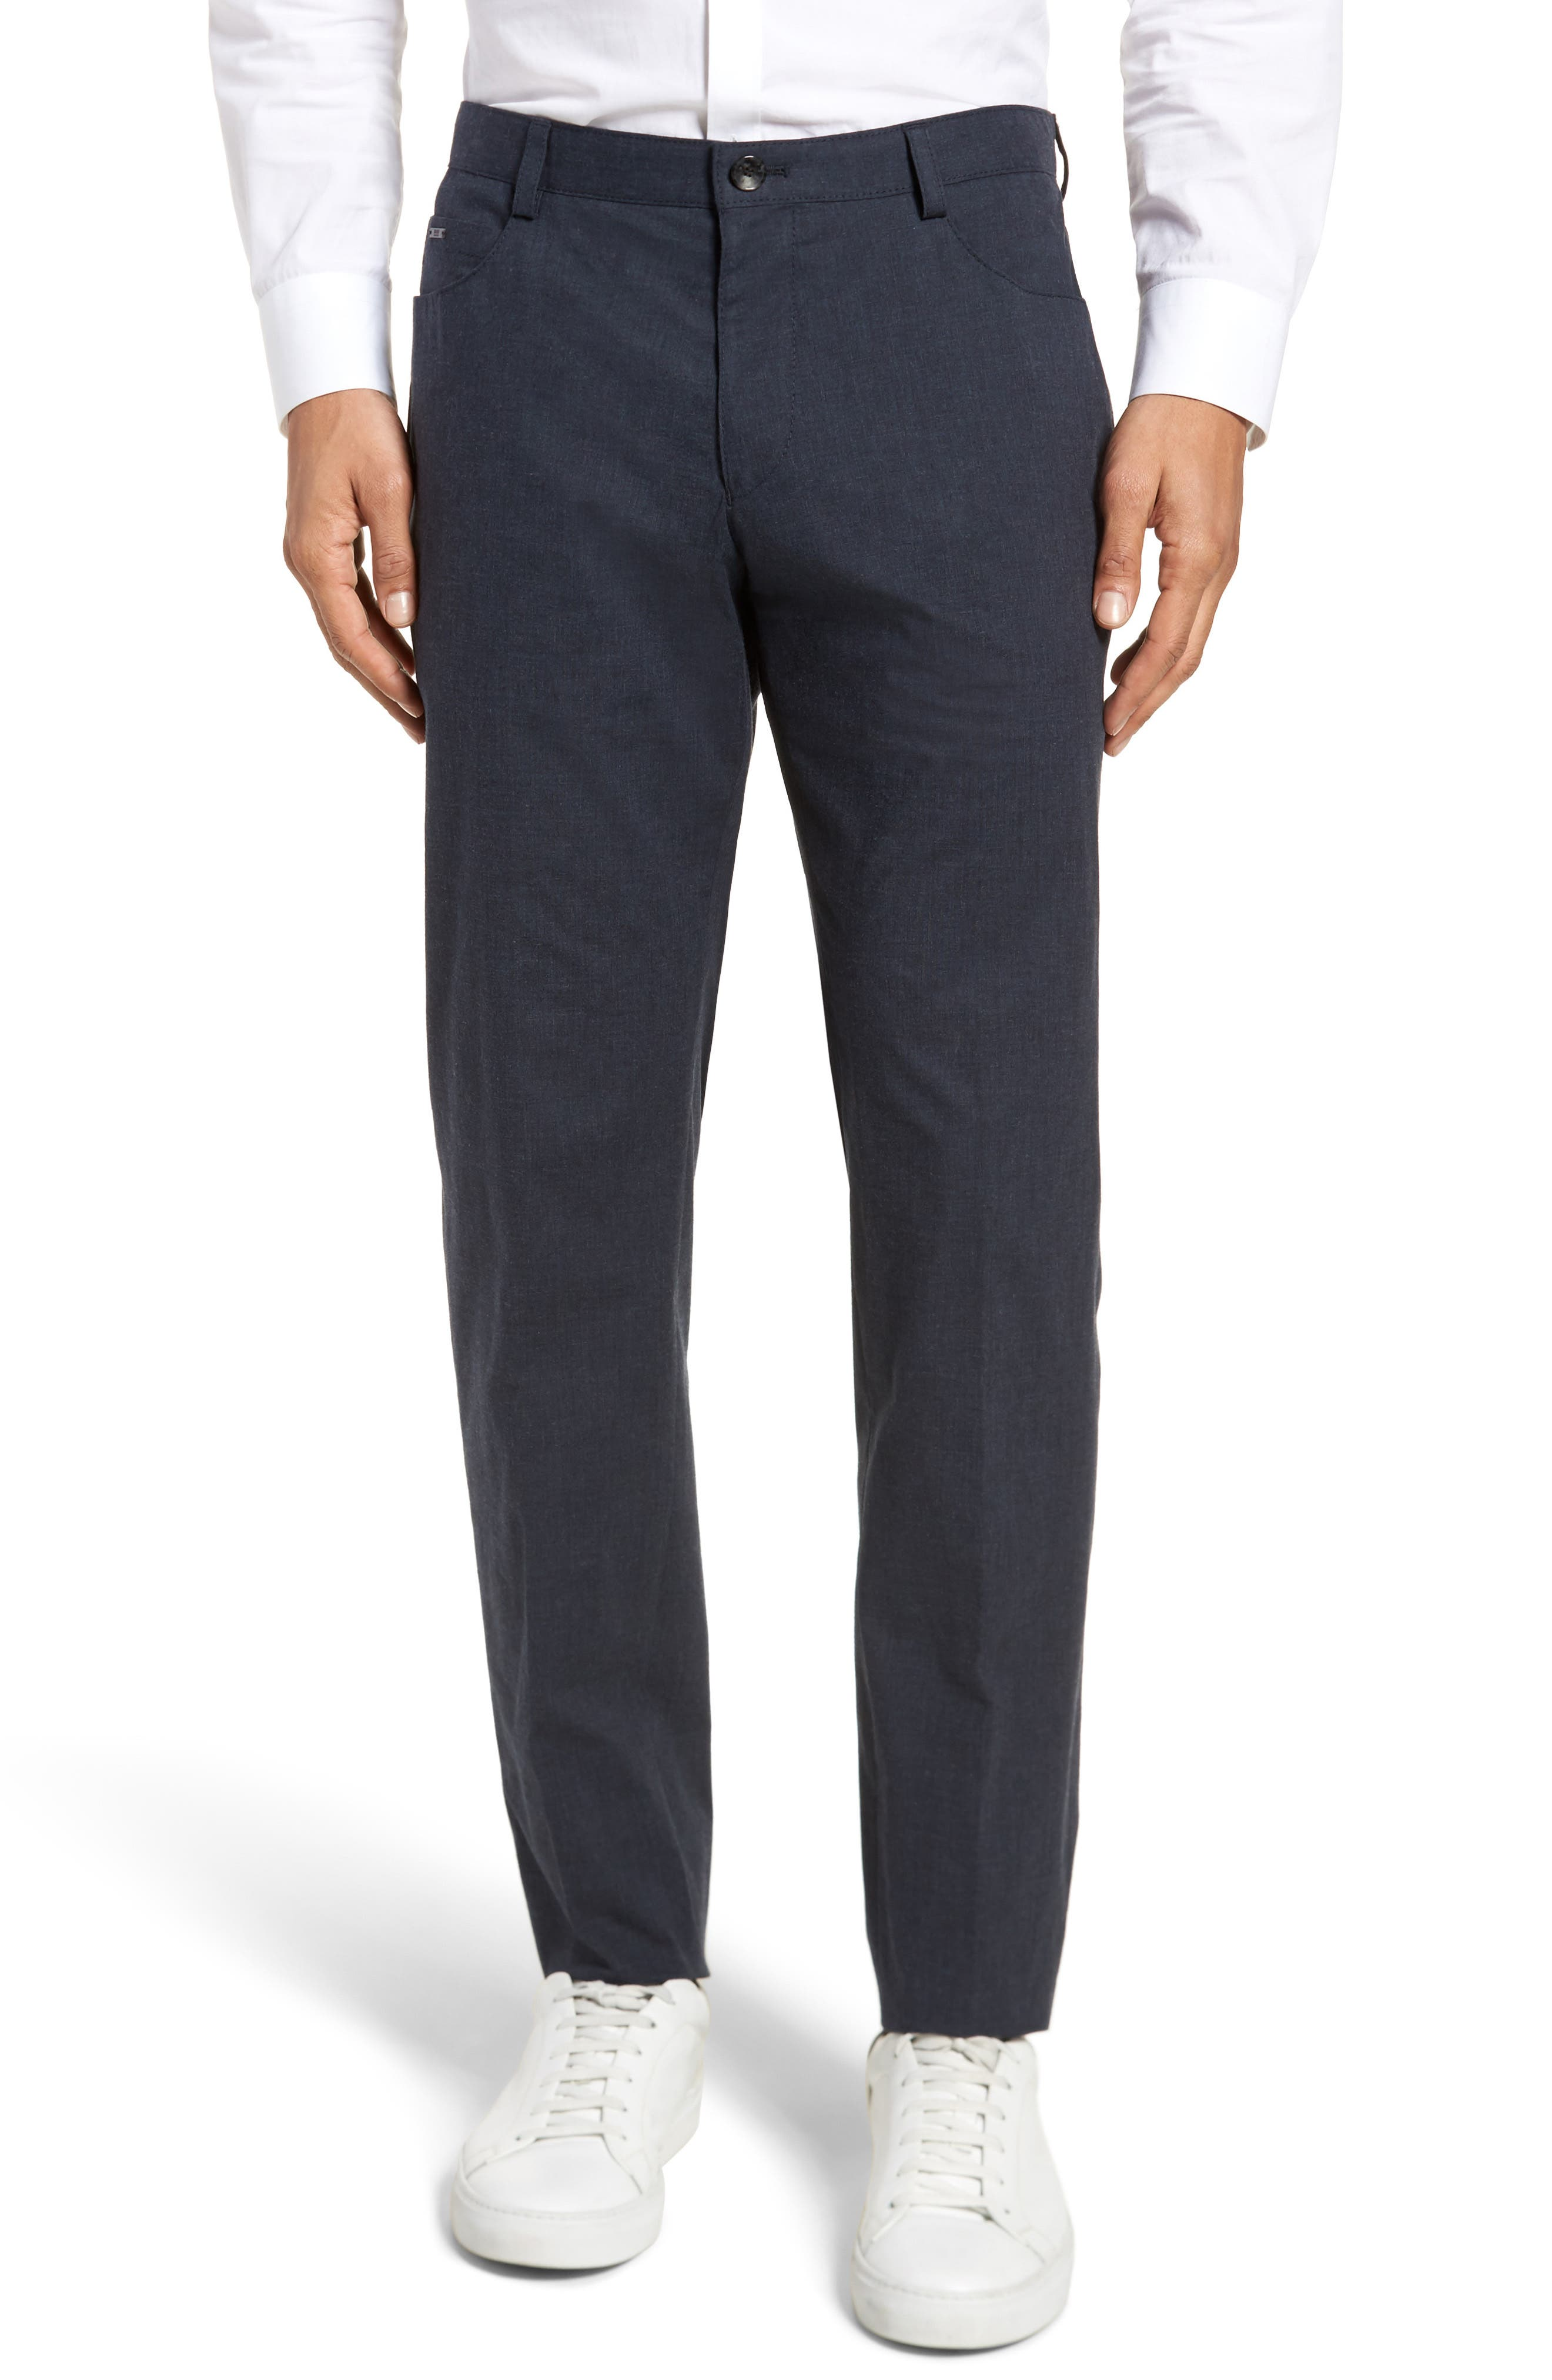 Gaetano Flat Front Stretch Solid Cotton Trousers,                         Main,                         color, DARK GREY